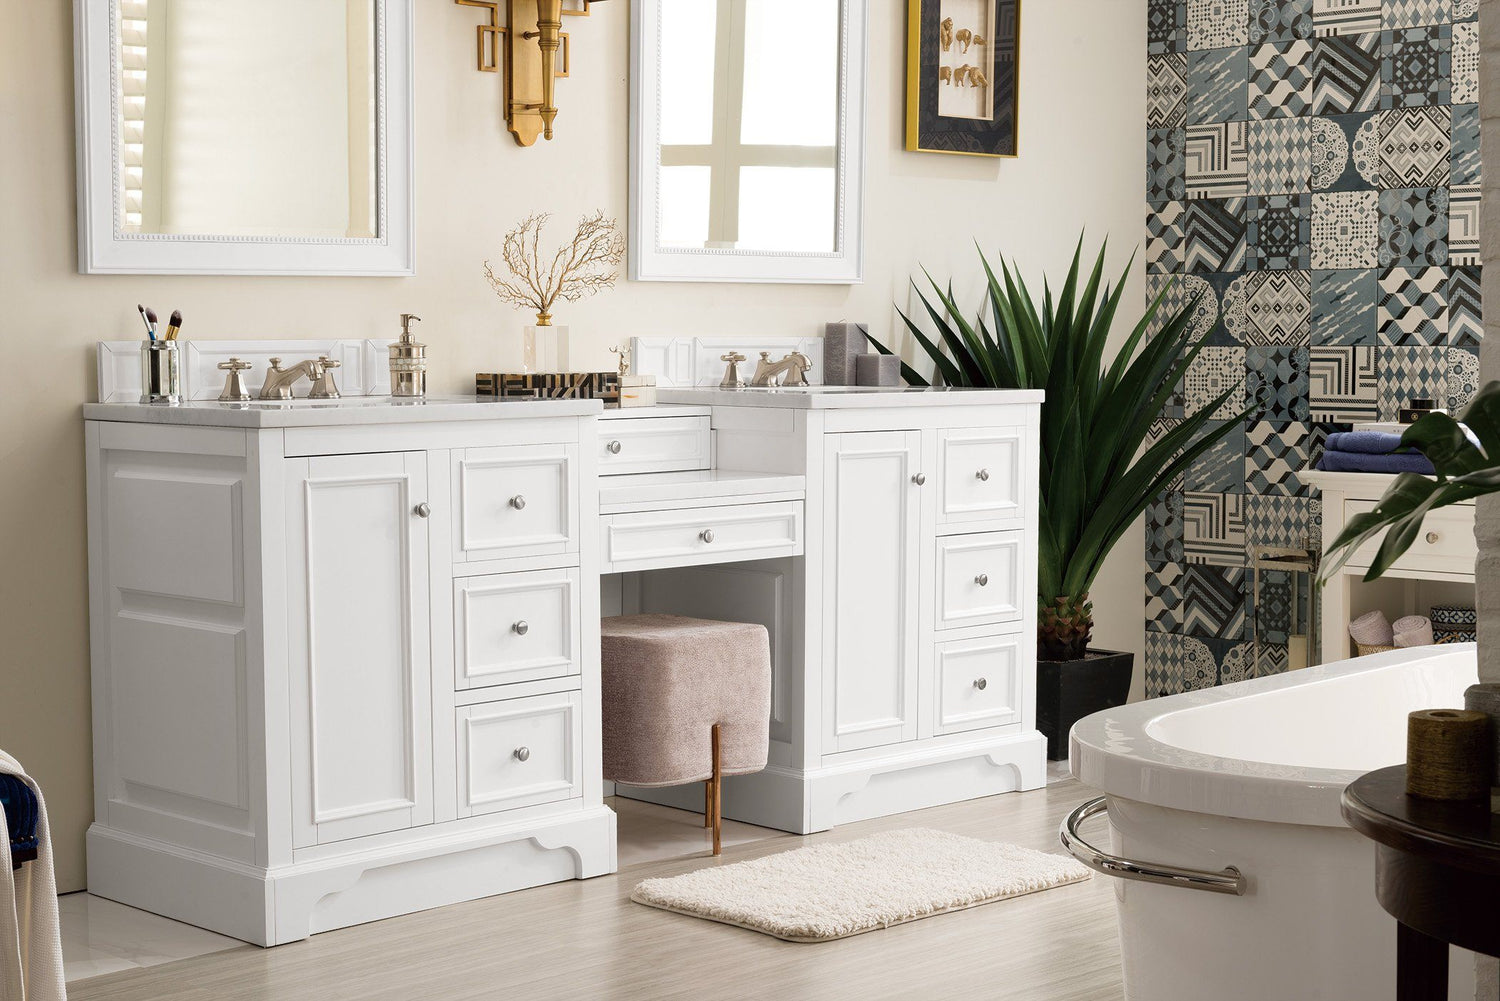 82 De Soto Bright White Double Sink Bathroom Vanity